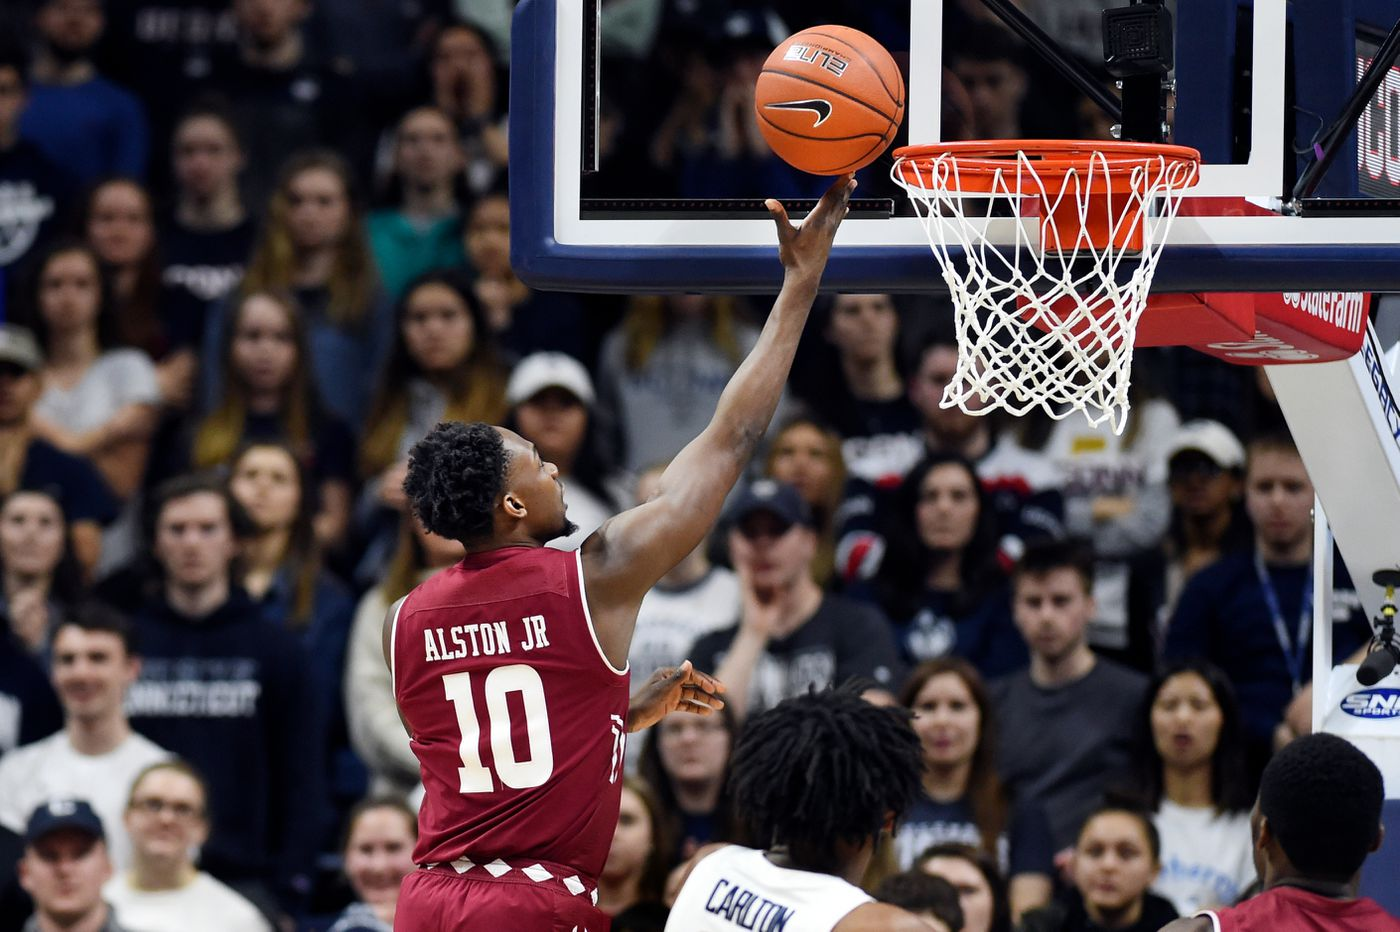 Shizz Alston's career-high 34 points help Temple beat UConn, keep tournament hopes alive